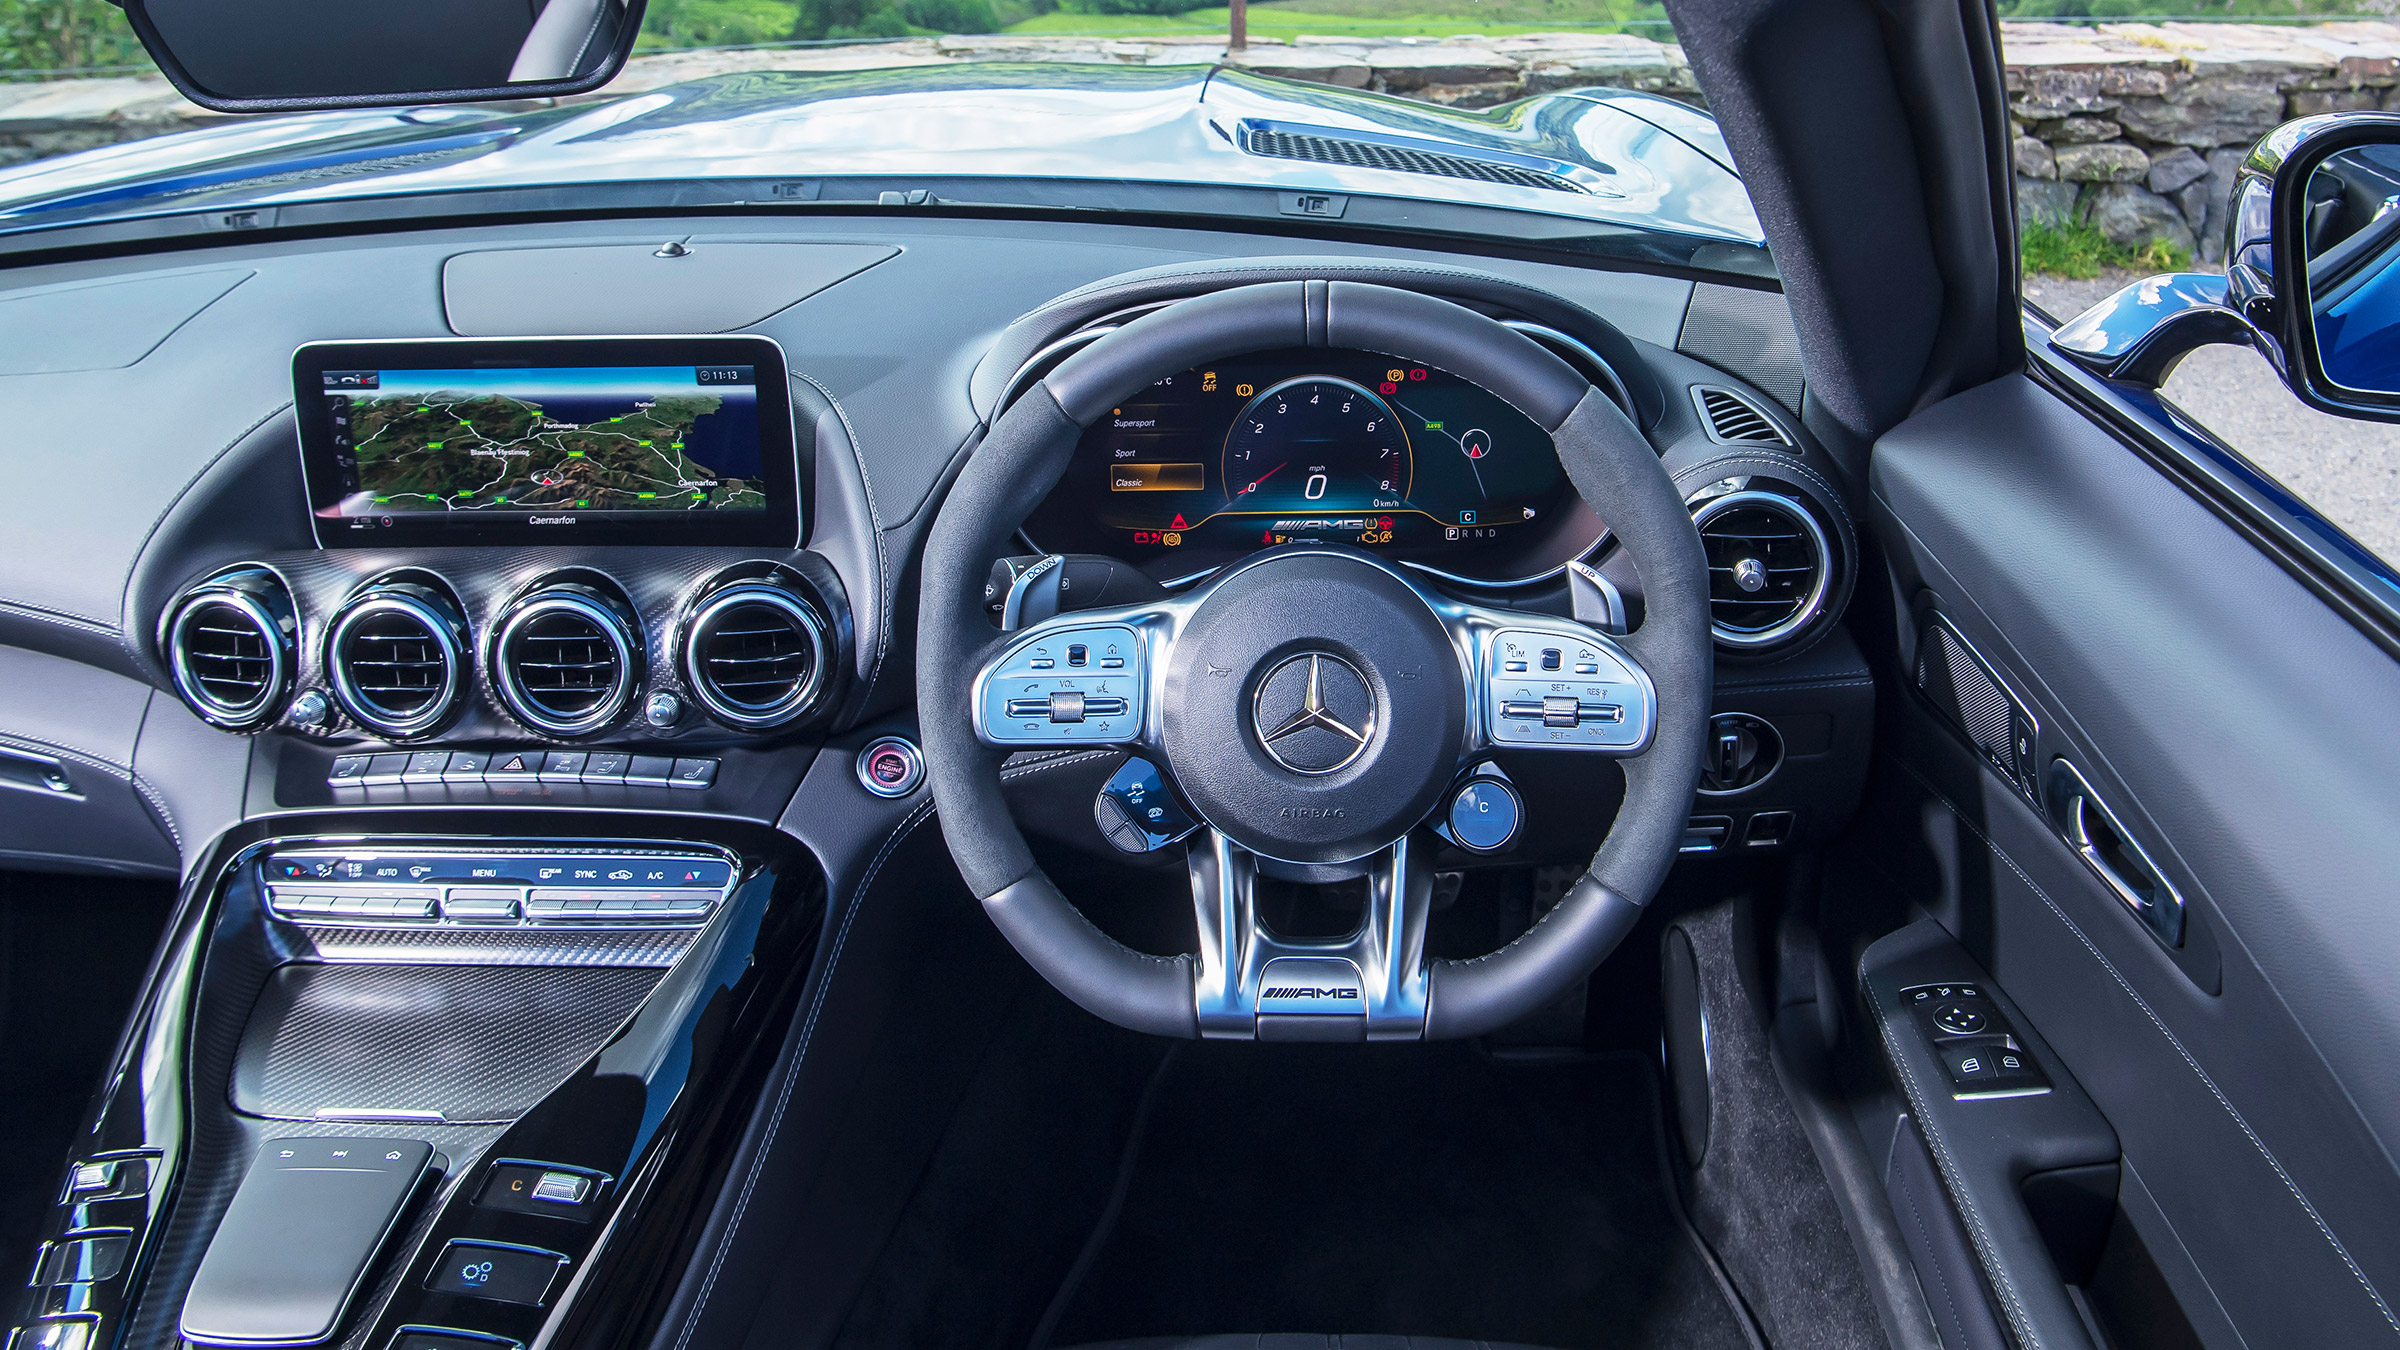 Mercedes Amg Gt Review A Supercar With An Identity All Of Its Own Evo